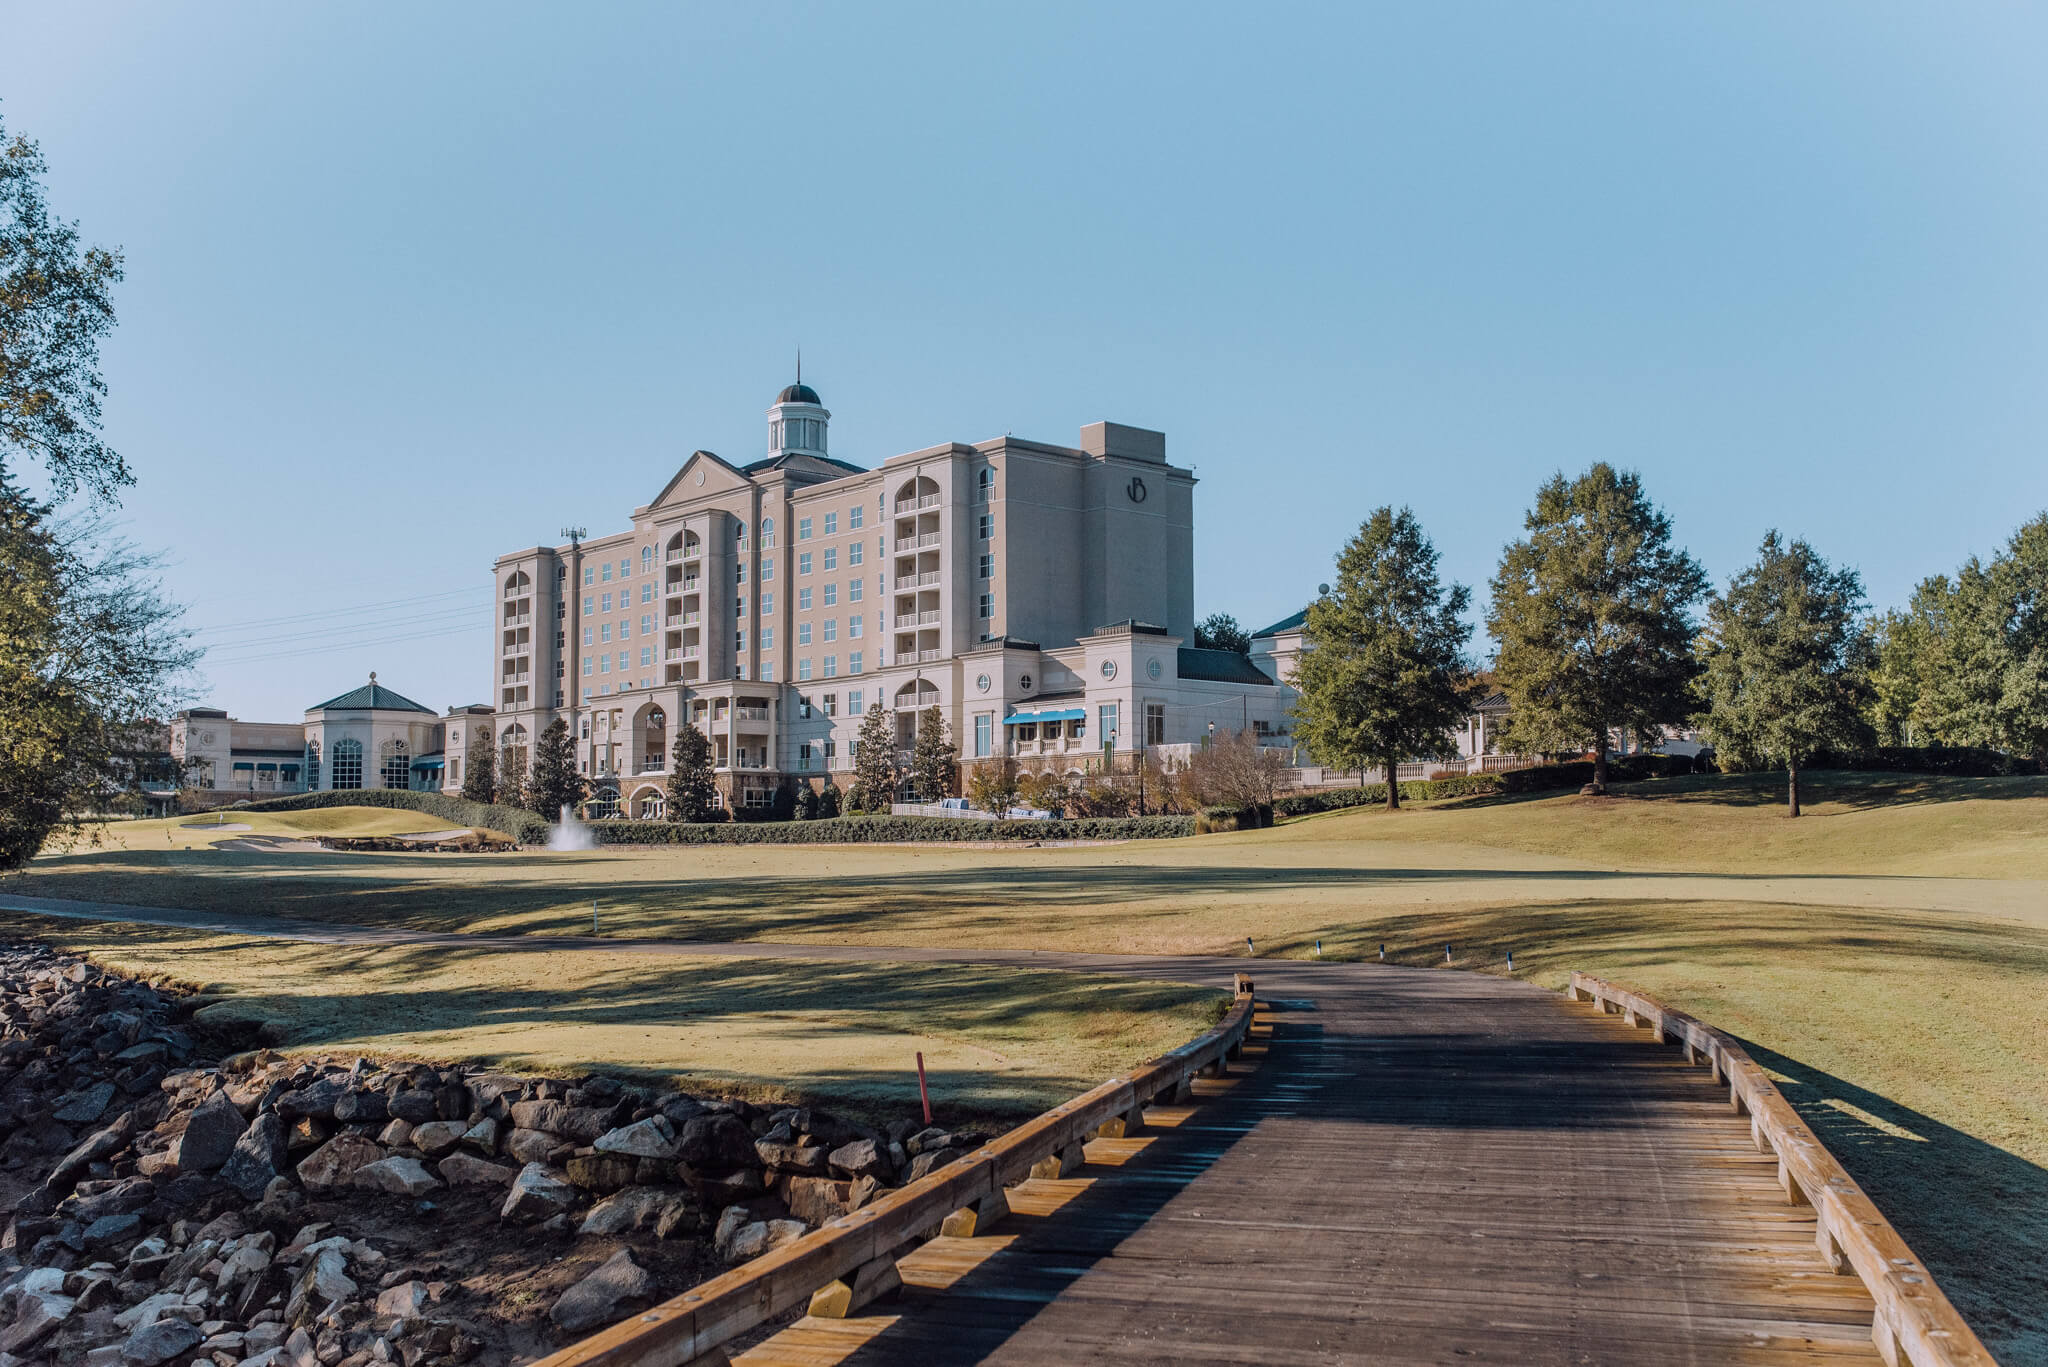 Impeccably maintained and spacious hotel grounds